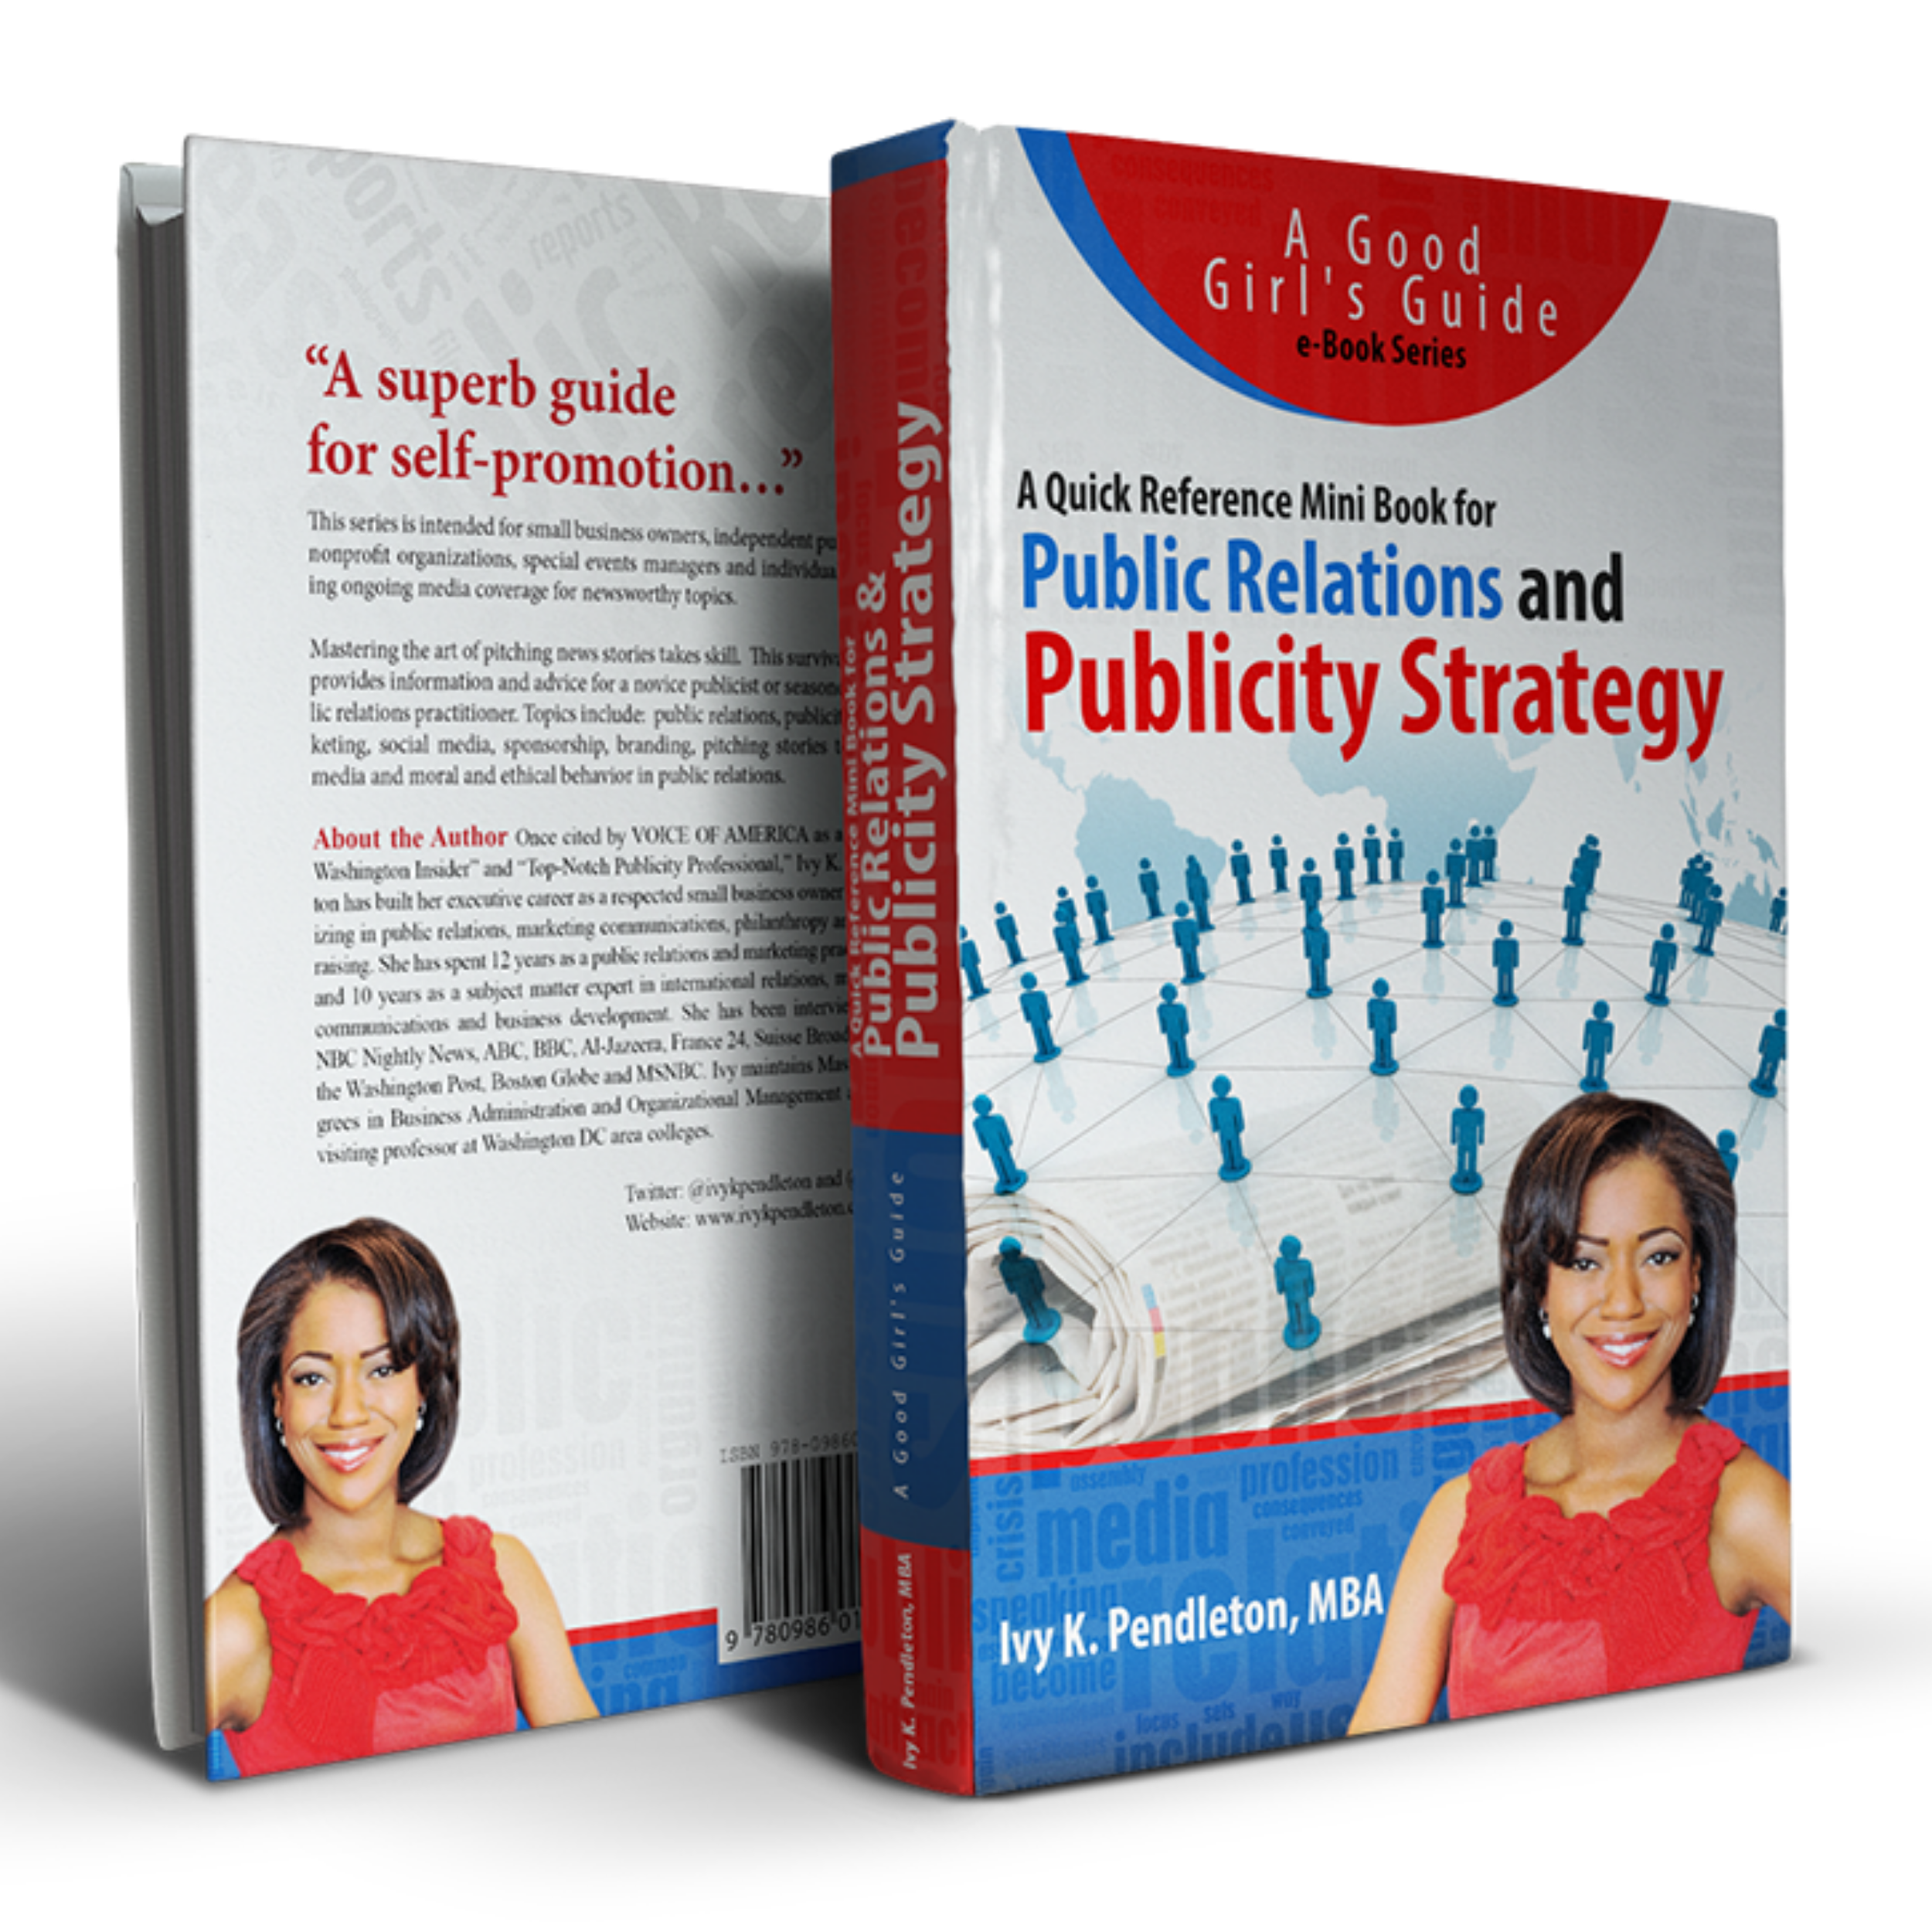 Publicity Tips by Ivy Pendleton